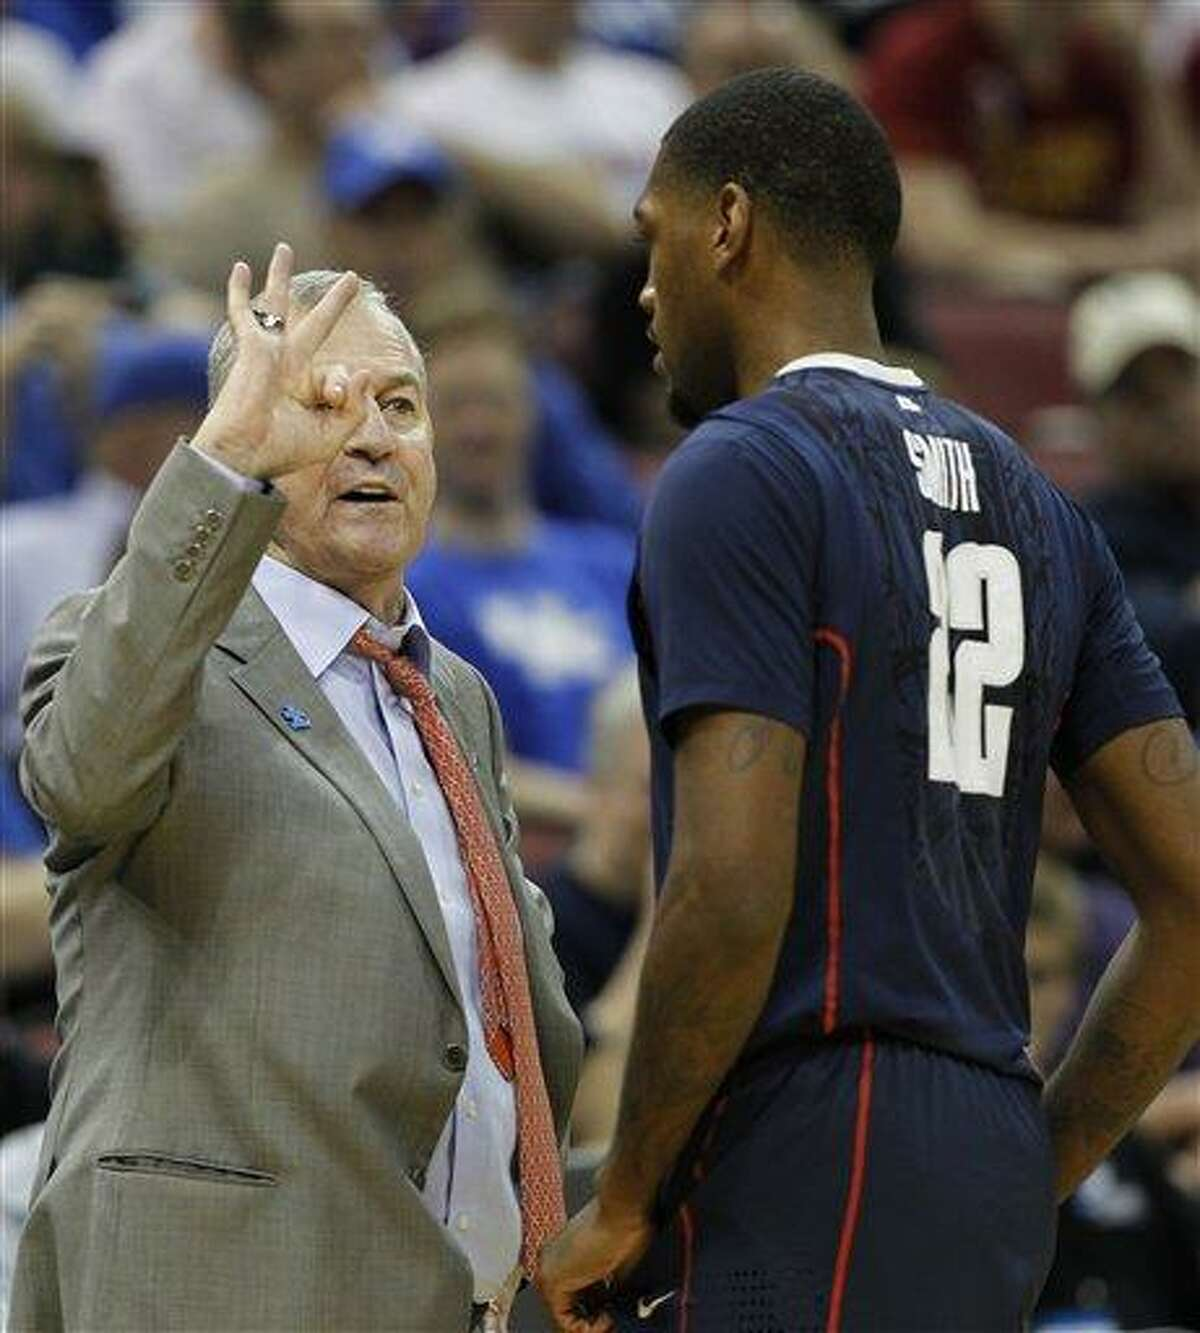 Connecticut head coach Jim Calhoun talks with Connecticut forward Roscoe Smith (22) in the first half of their NCAA tournament second-round college basketball game in Louisville, Ky., Thursday, March 15, 2012. (AP Photo/John Bazemore)